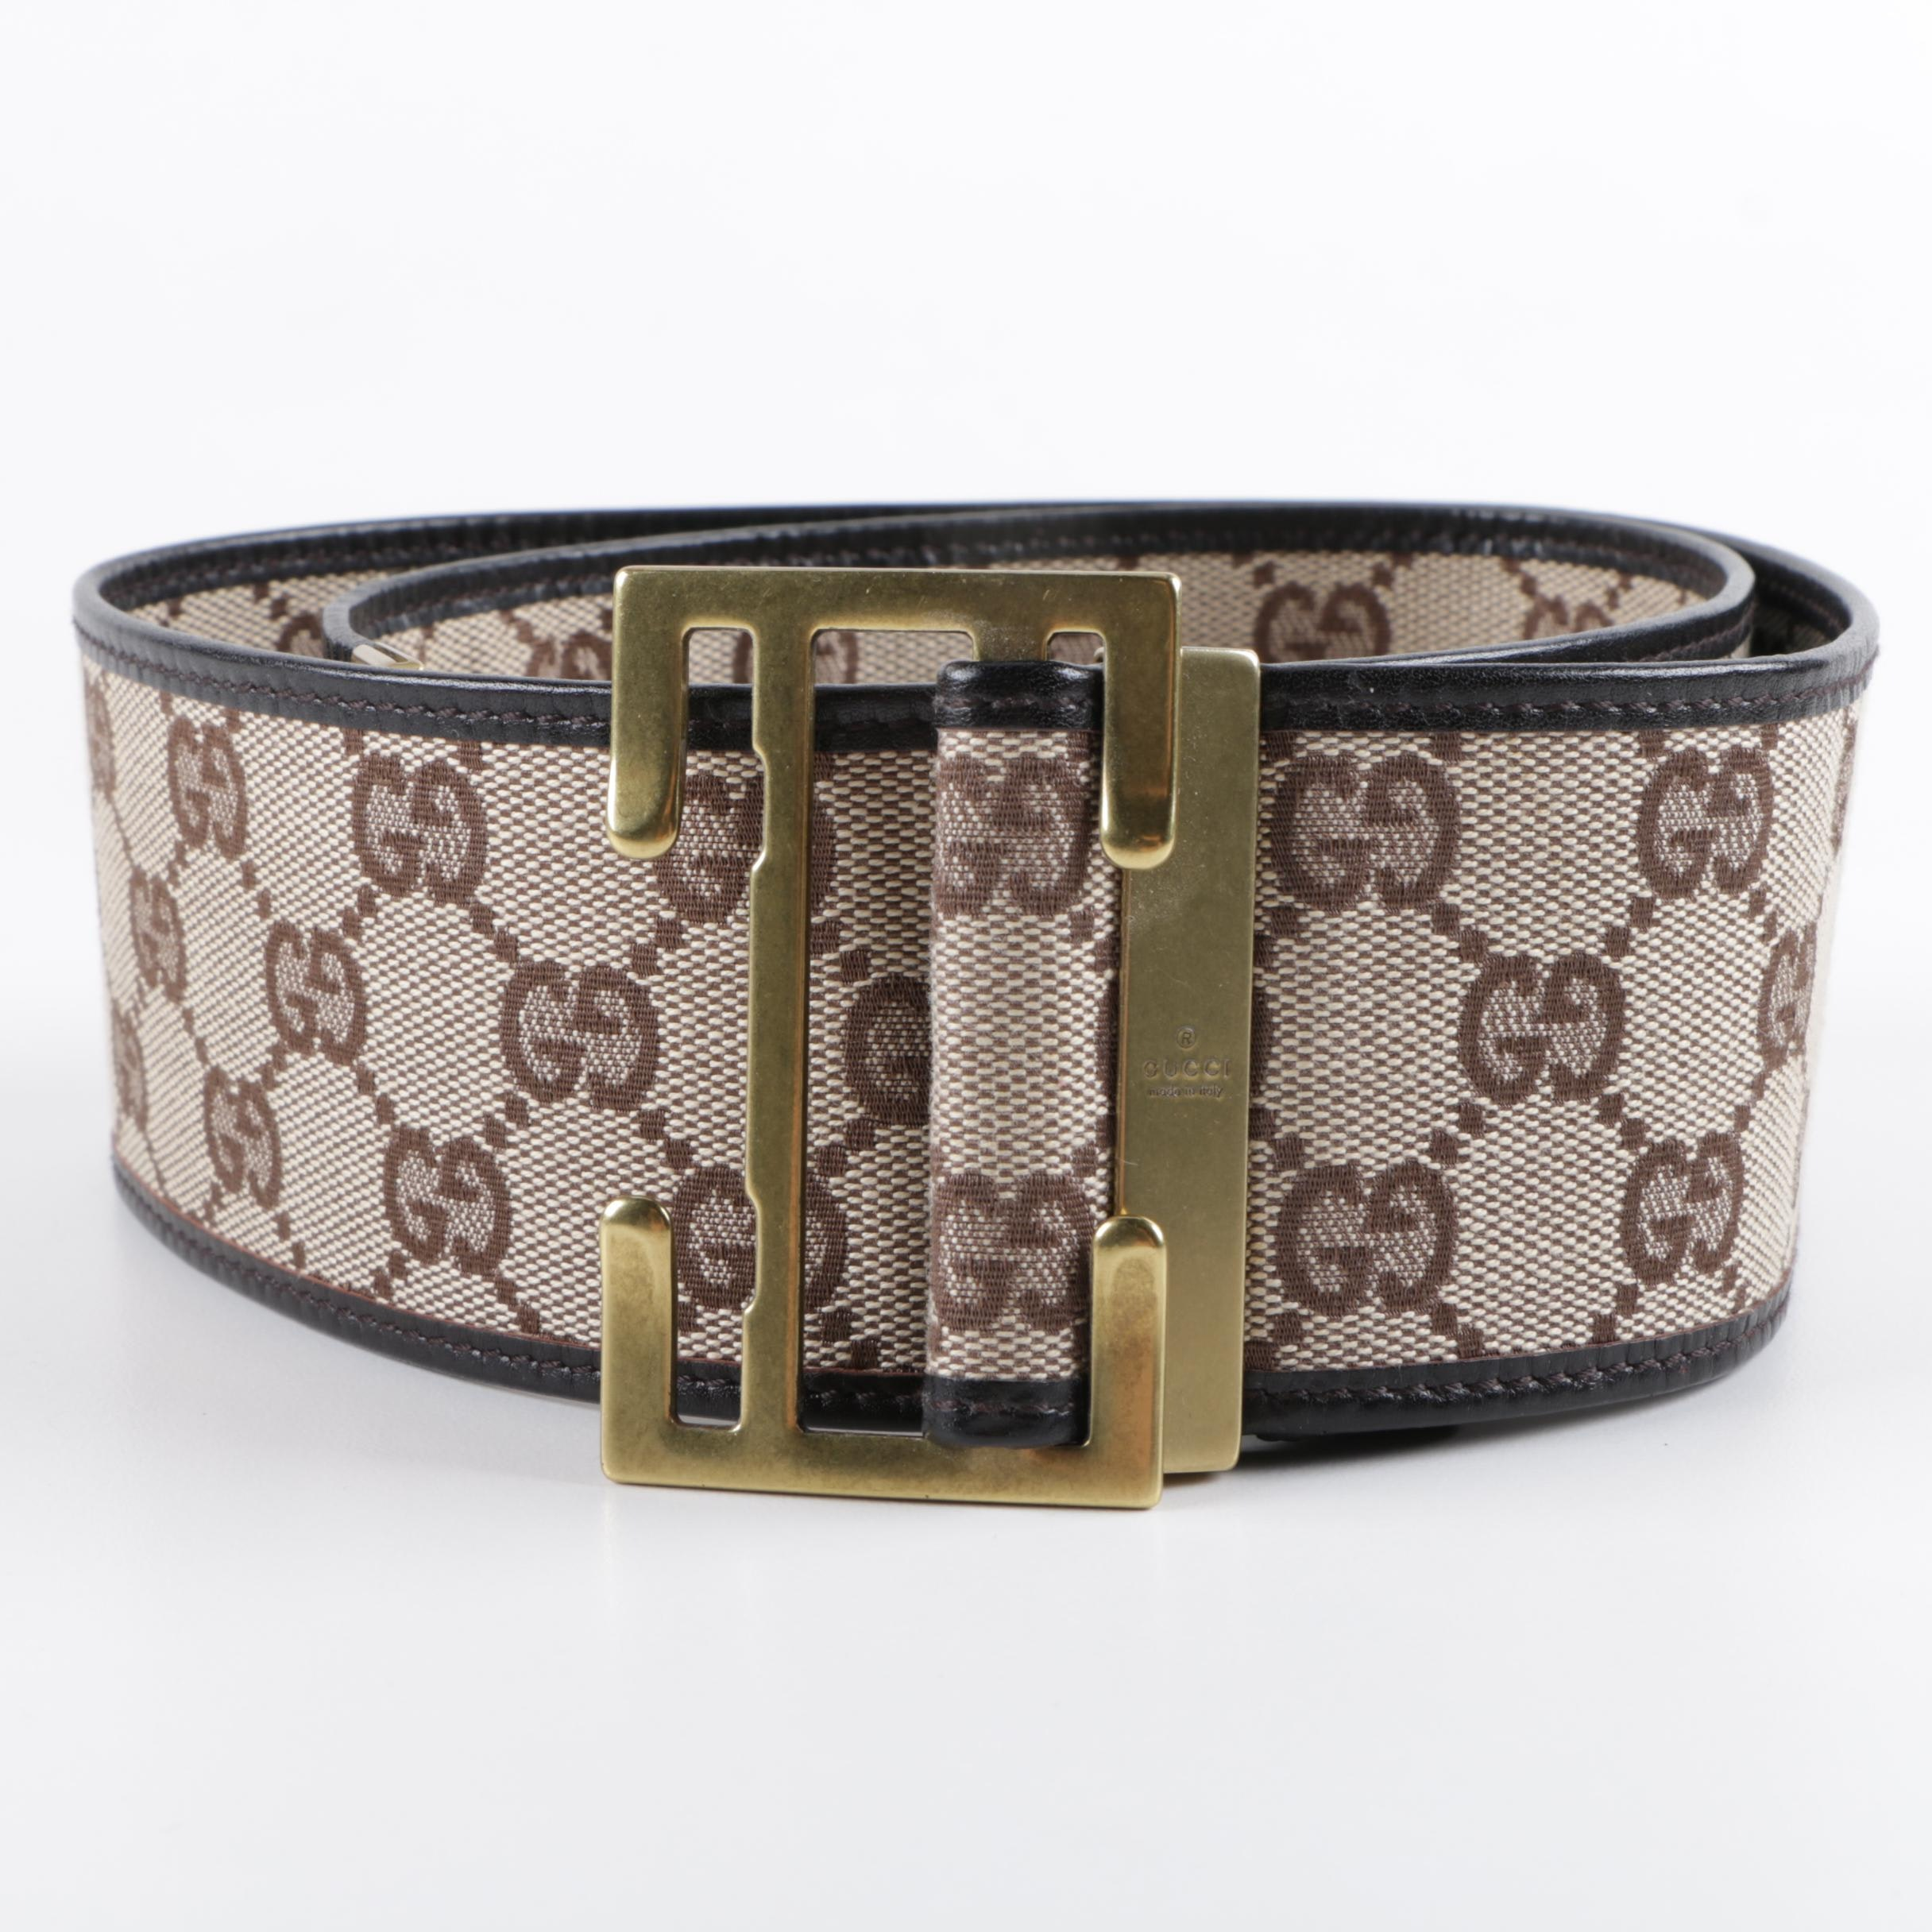 Gucci GG Supreme Canvas and Leather Belt